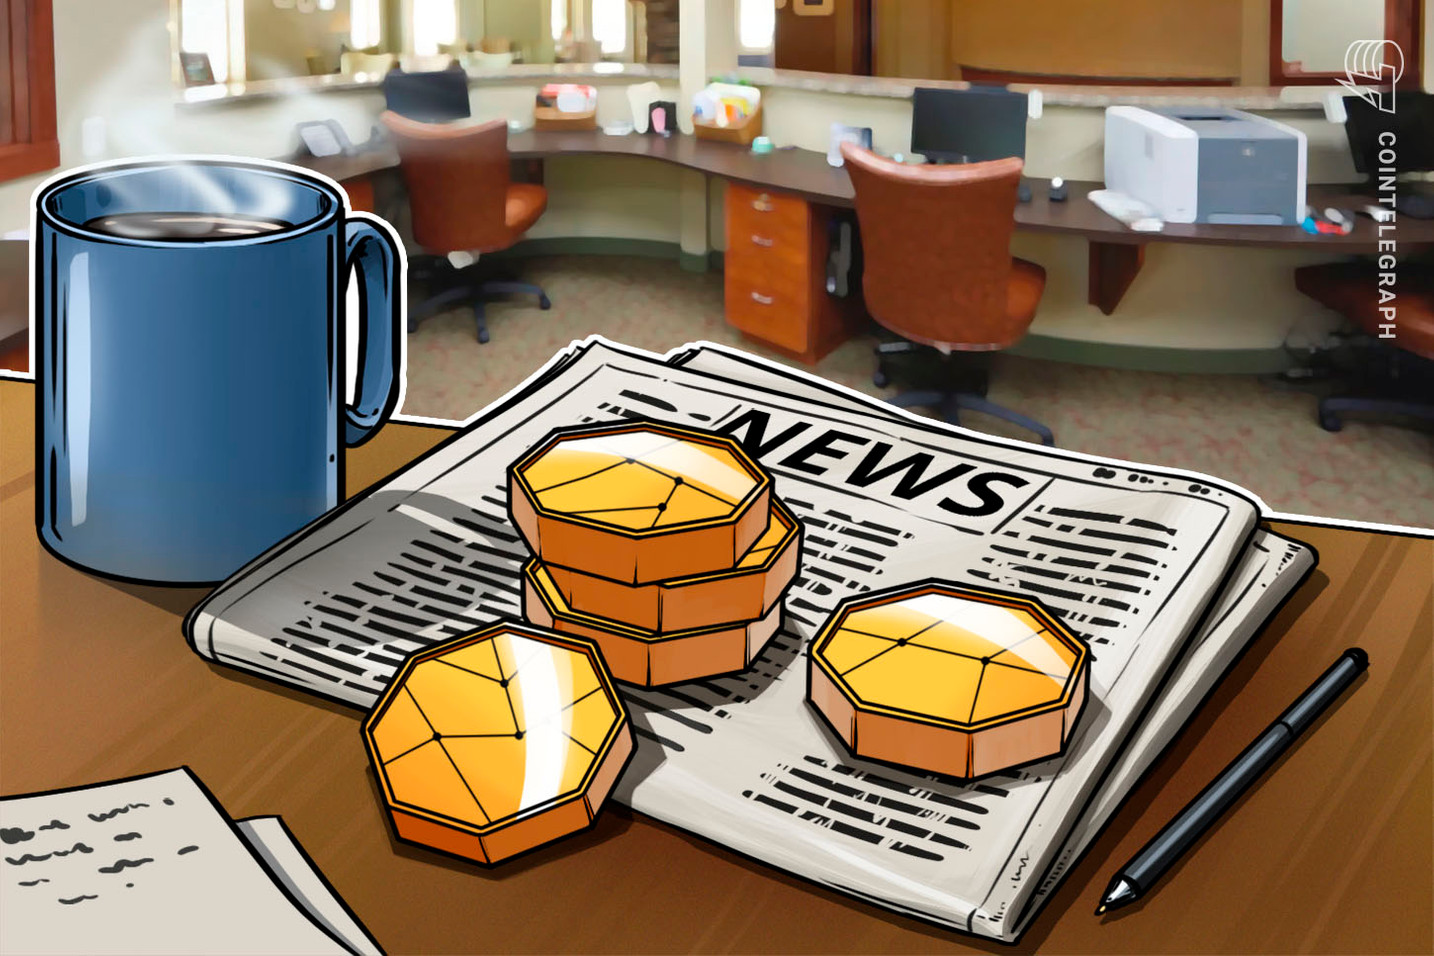 Brazilian Cryptocurrency Brokerage Wins Lawsuit Over Closed Bank Account